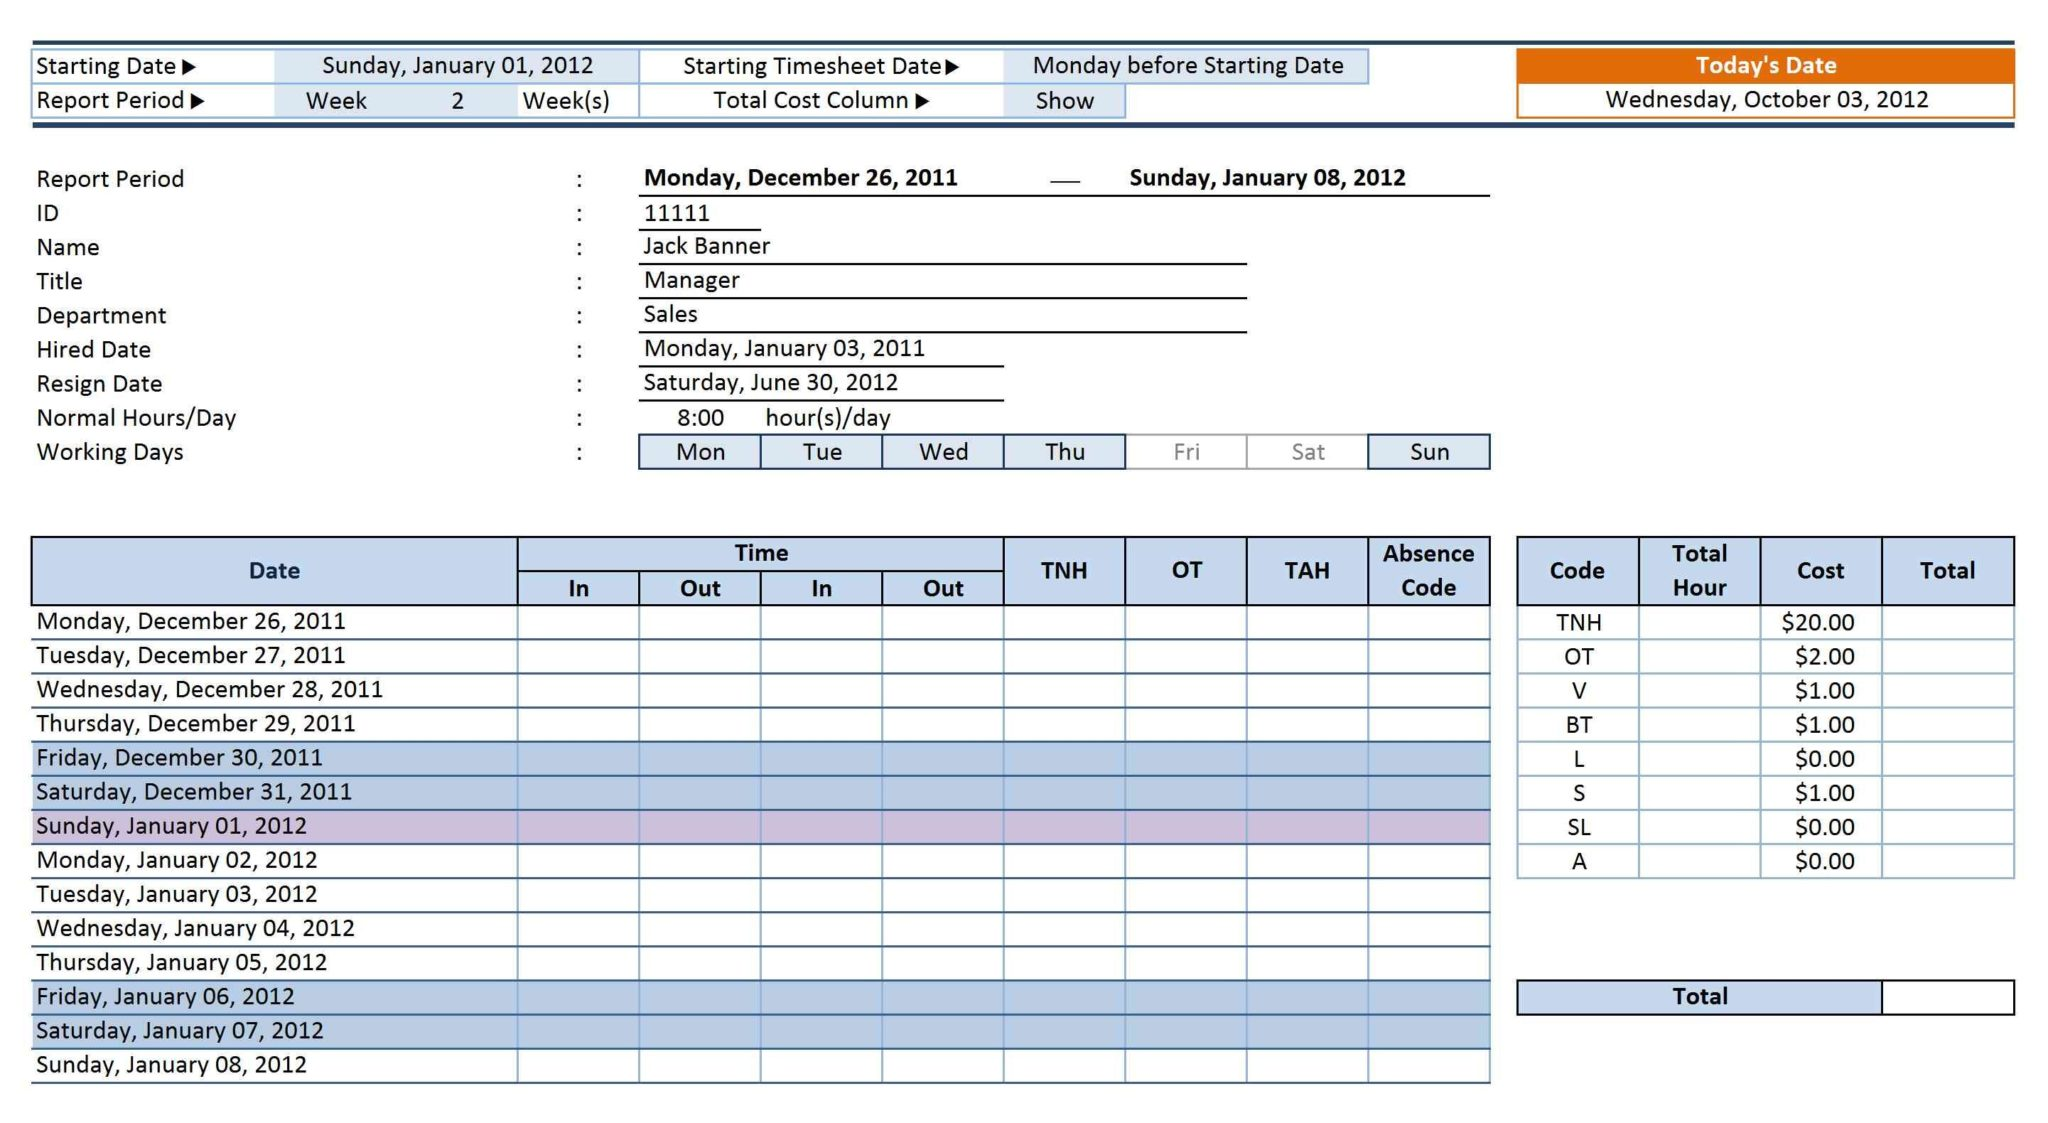 Employee Time And Attendance Tracking Software And Employee Attendance Tracker Printable